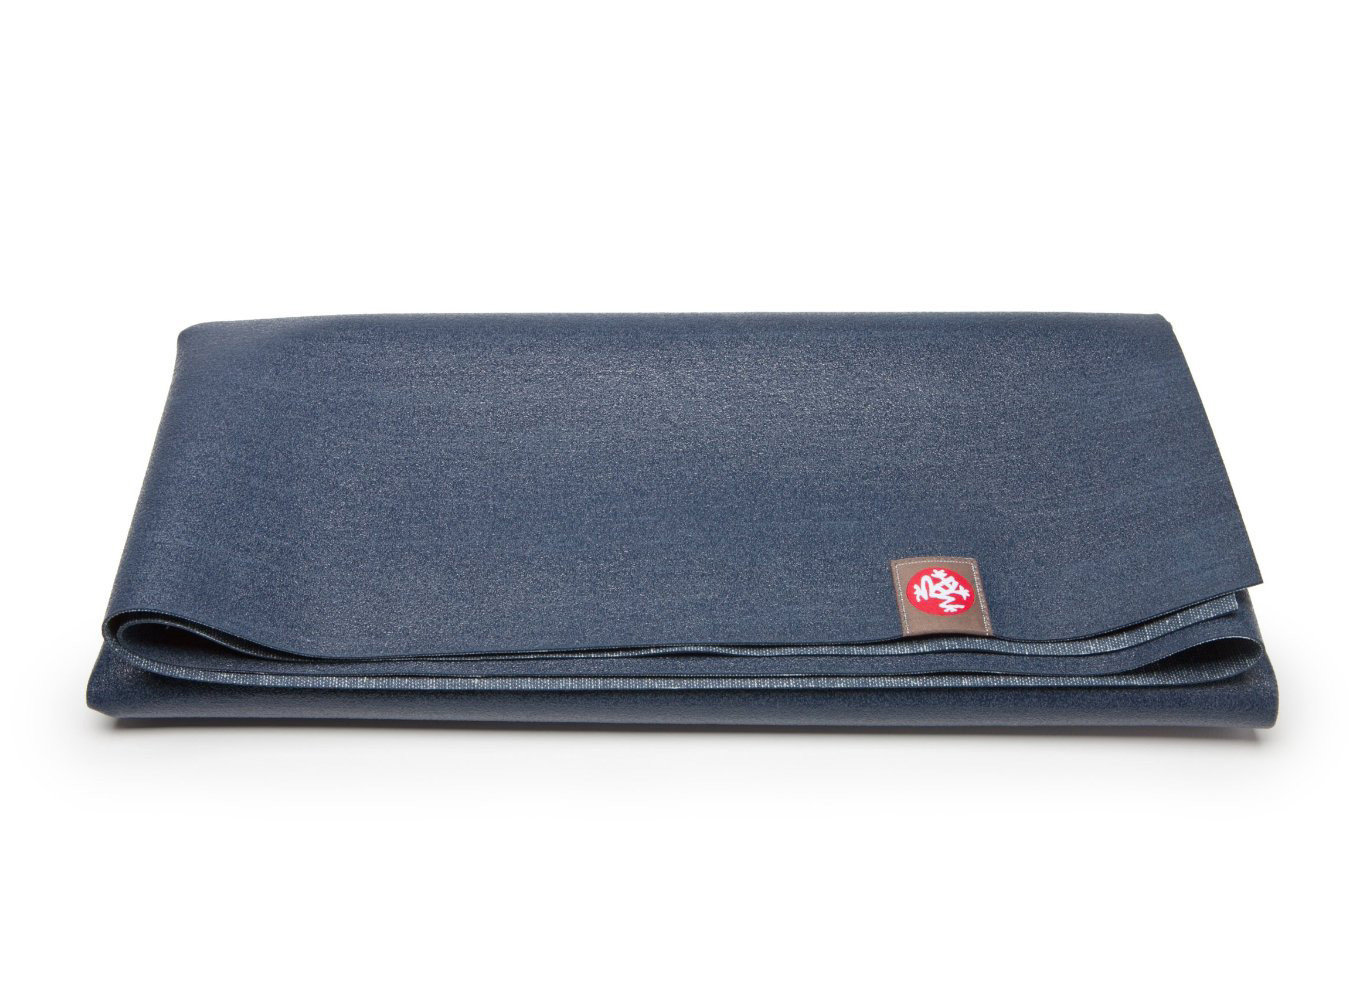 Health + Wellness Travel Tips accessory case product textile tablecloth leather material